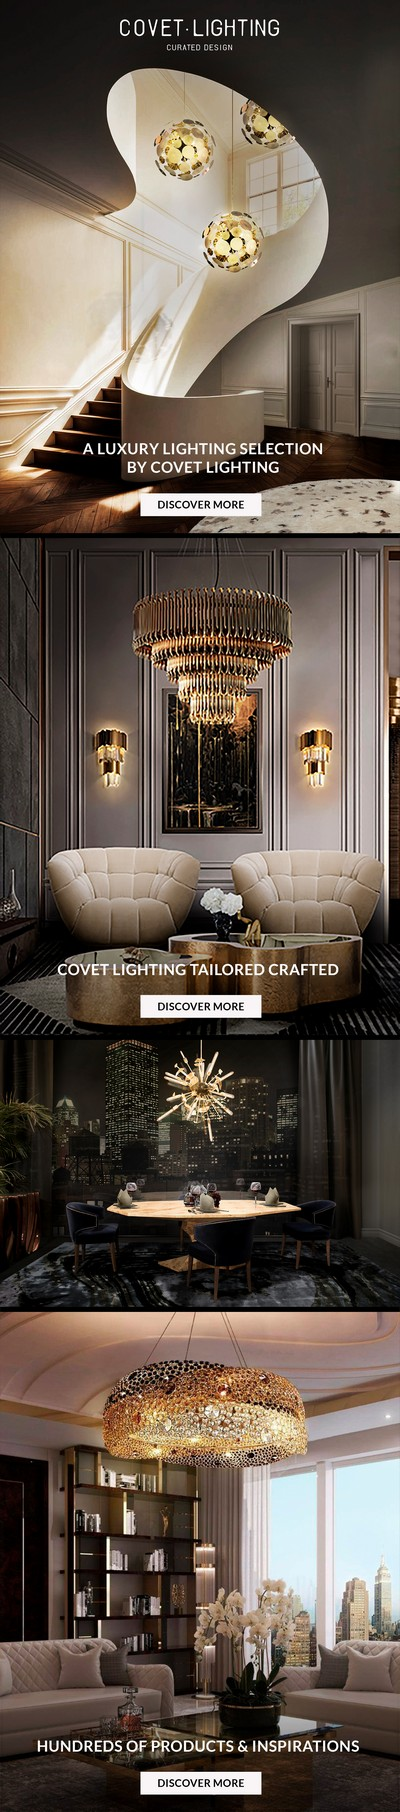 Side Banner Moodboard Covet Lighting  Home sidebannermoodboardcovetlighting 203